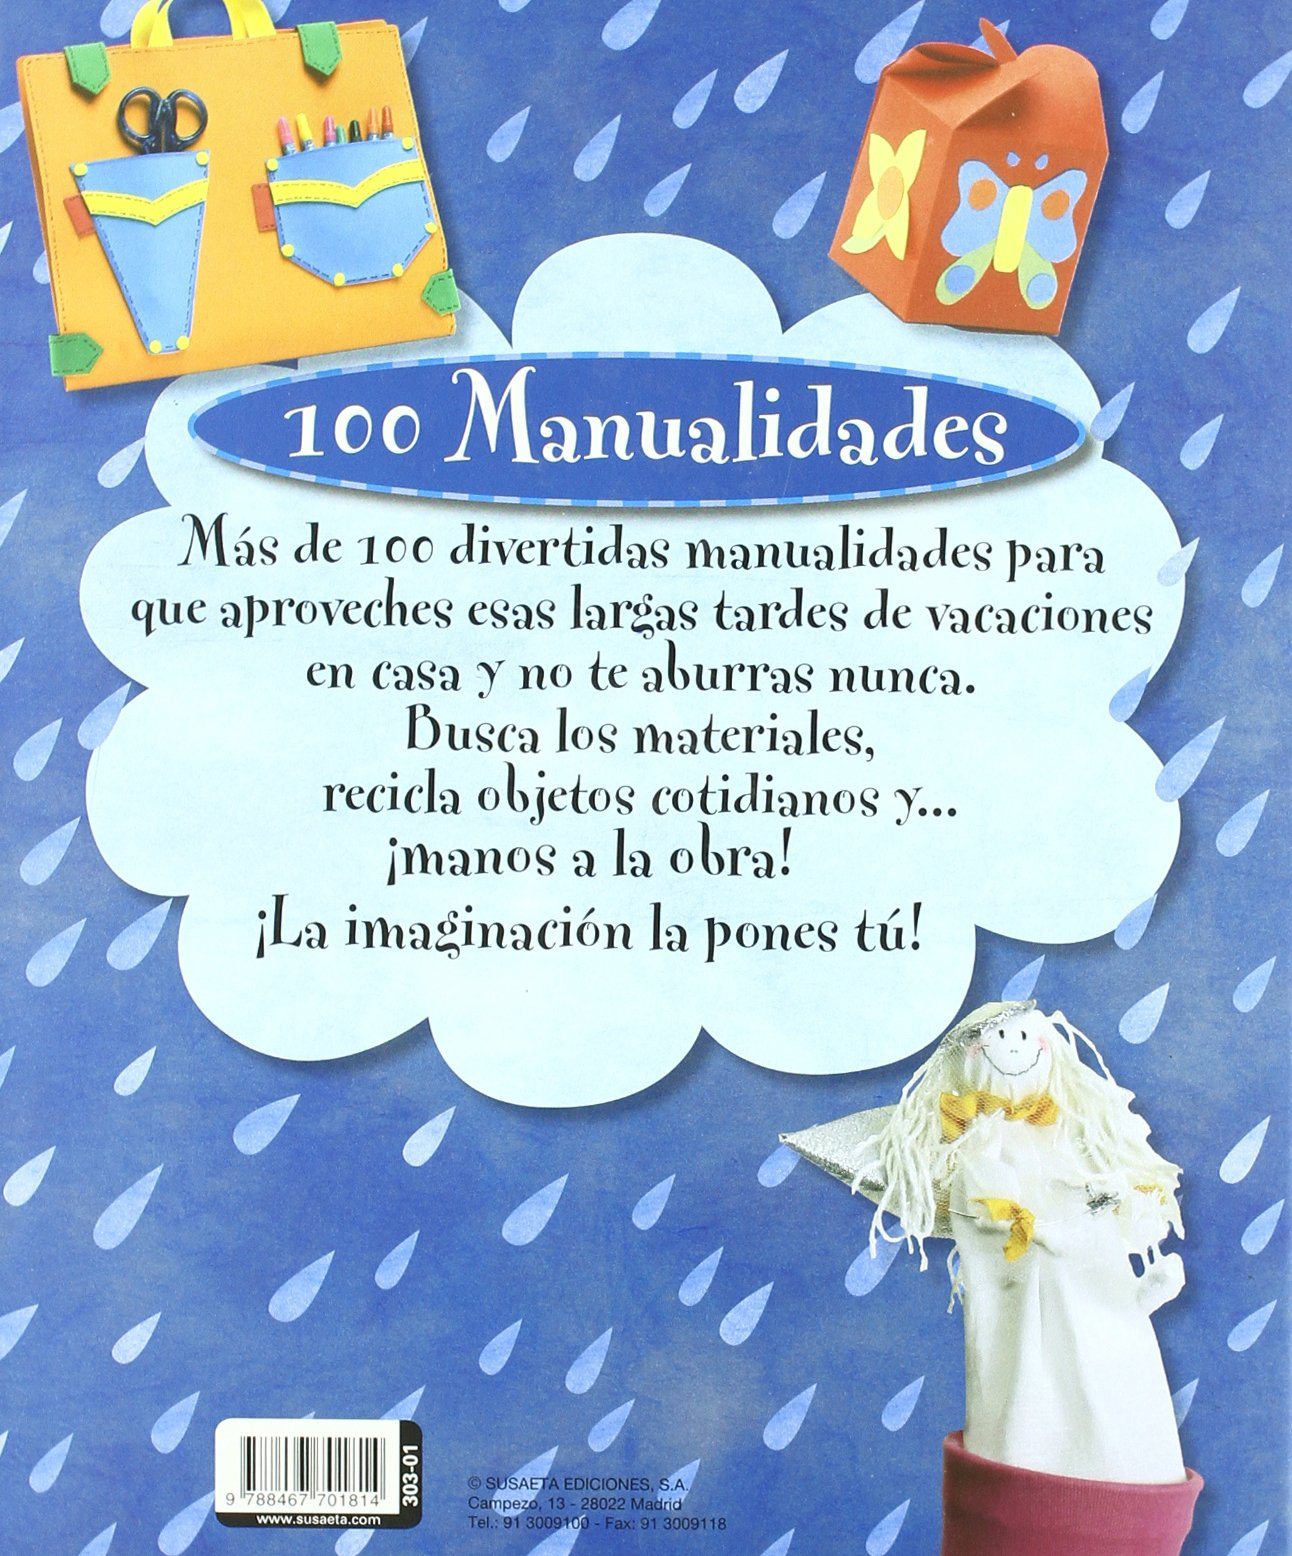 102 manualidades divertidas (100 Manualidades) (Spanish Edition): Inc.  Susaeta Publishing: 9788467701814: Amazon.com: Books